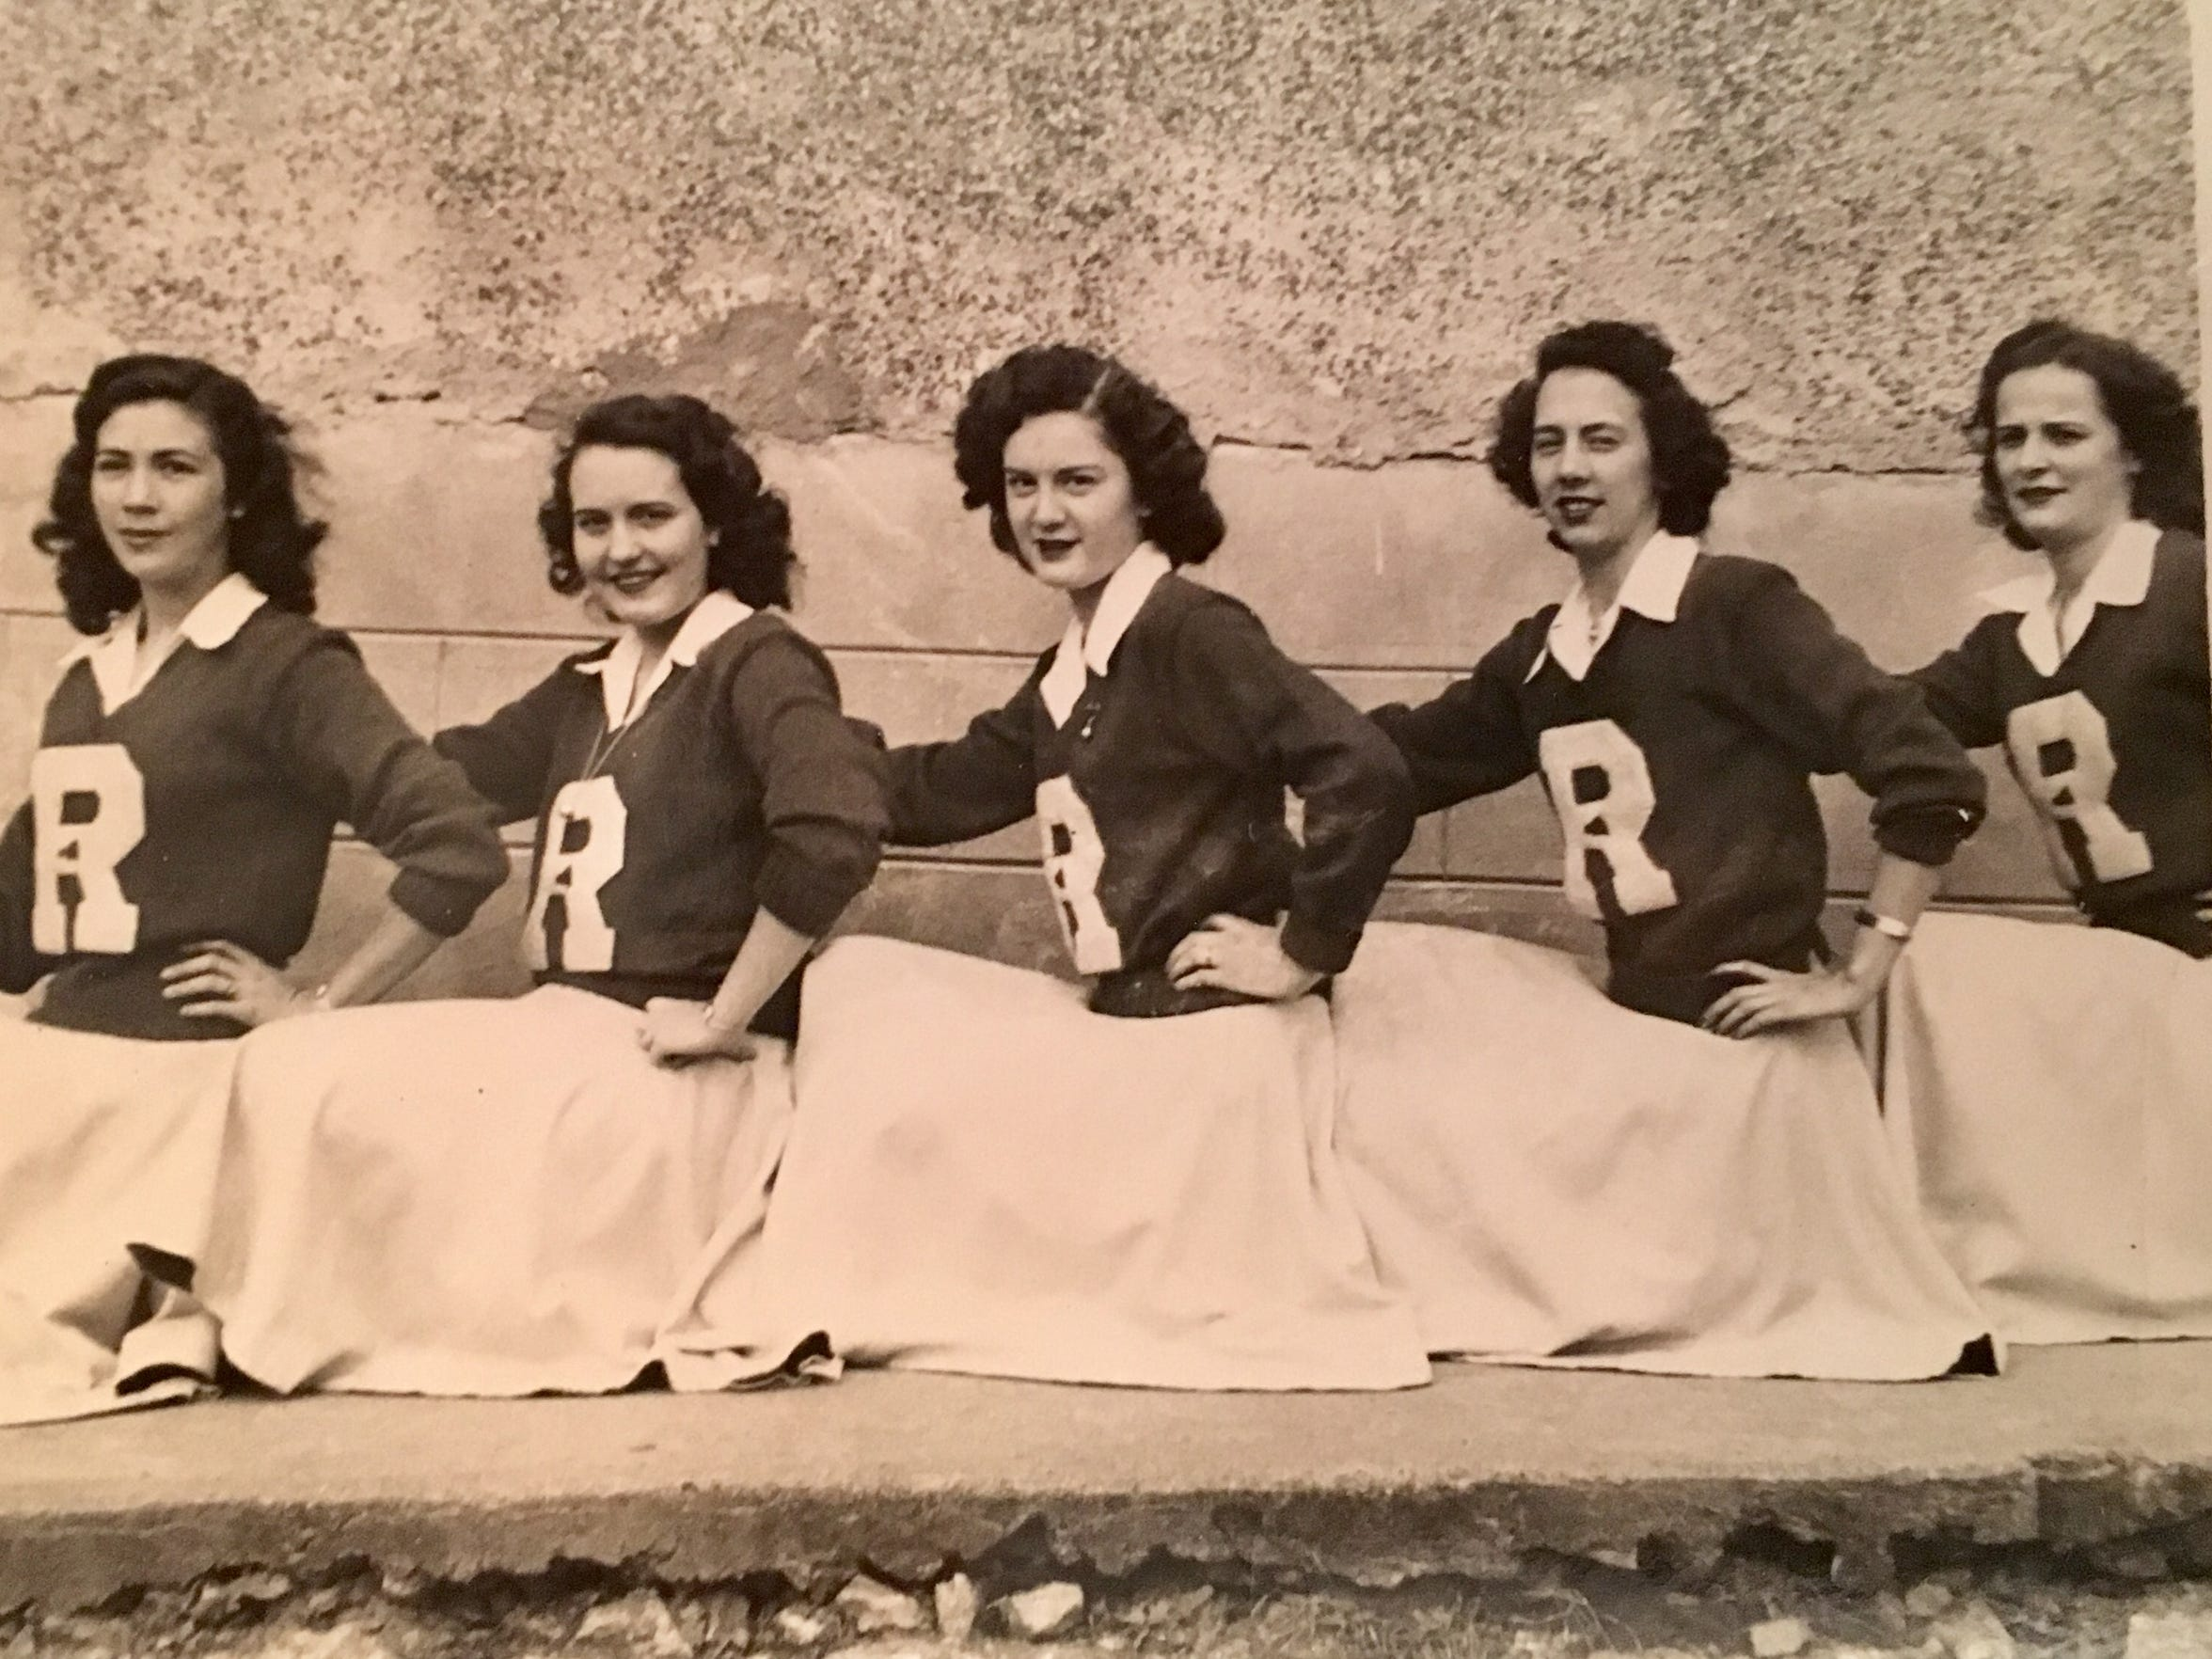 Cheerleaders for the Class of 1950 at Renaker High